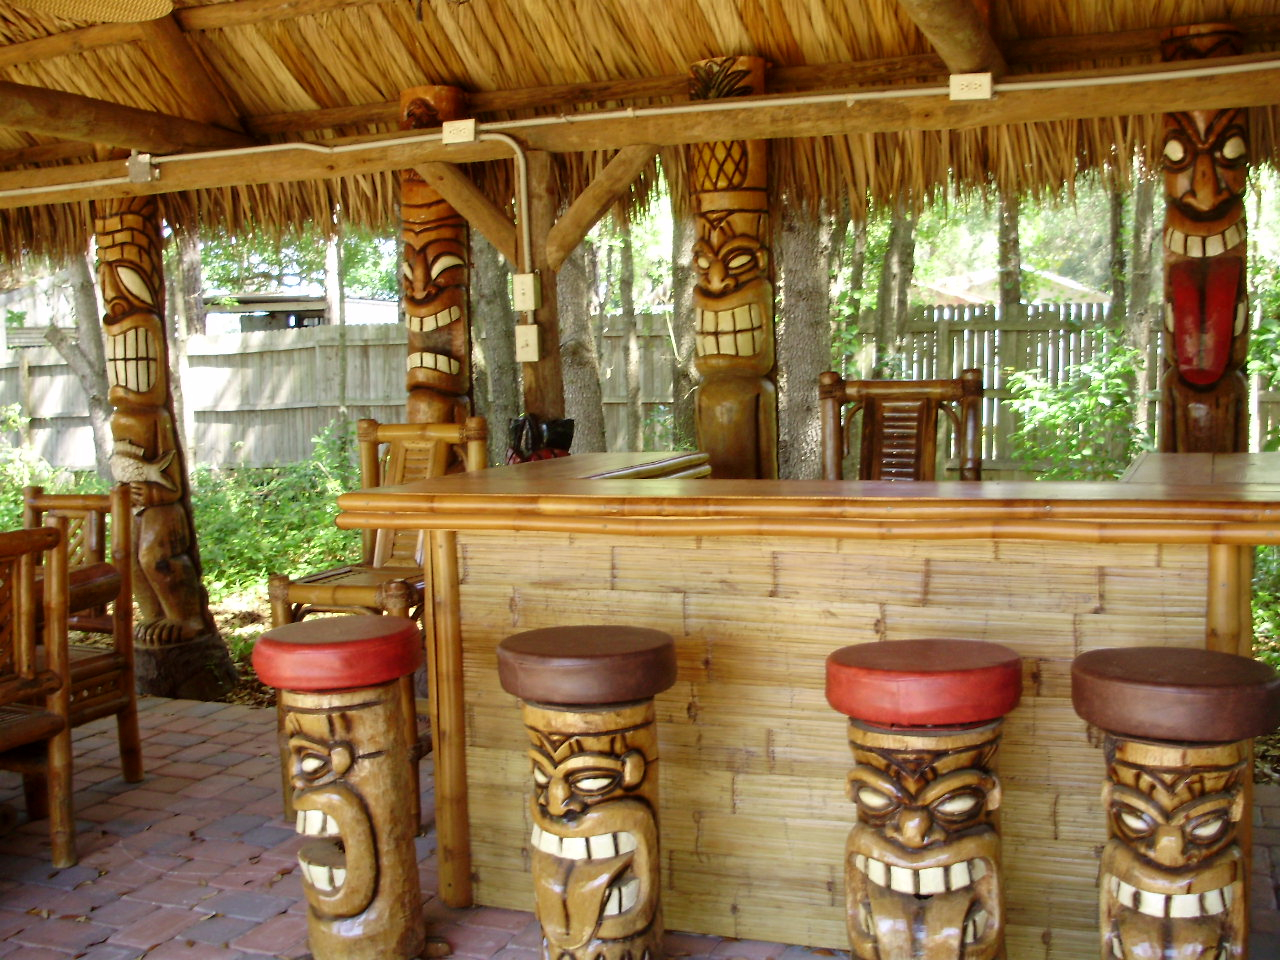 Backyard Tiki Bar Ideas Mystical Designs And Tags regarding 15 Some of the Coolest Concepts of How to Build Backyard Tiki Bar Ideas